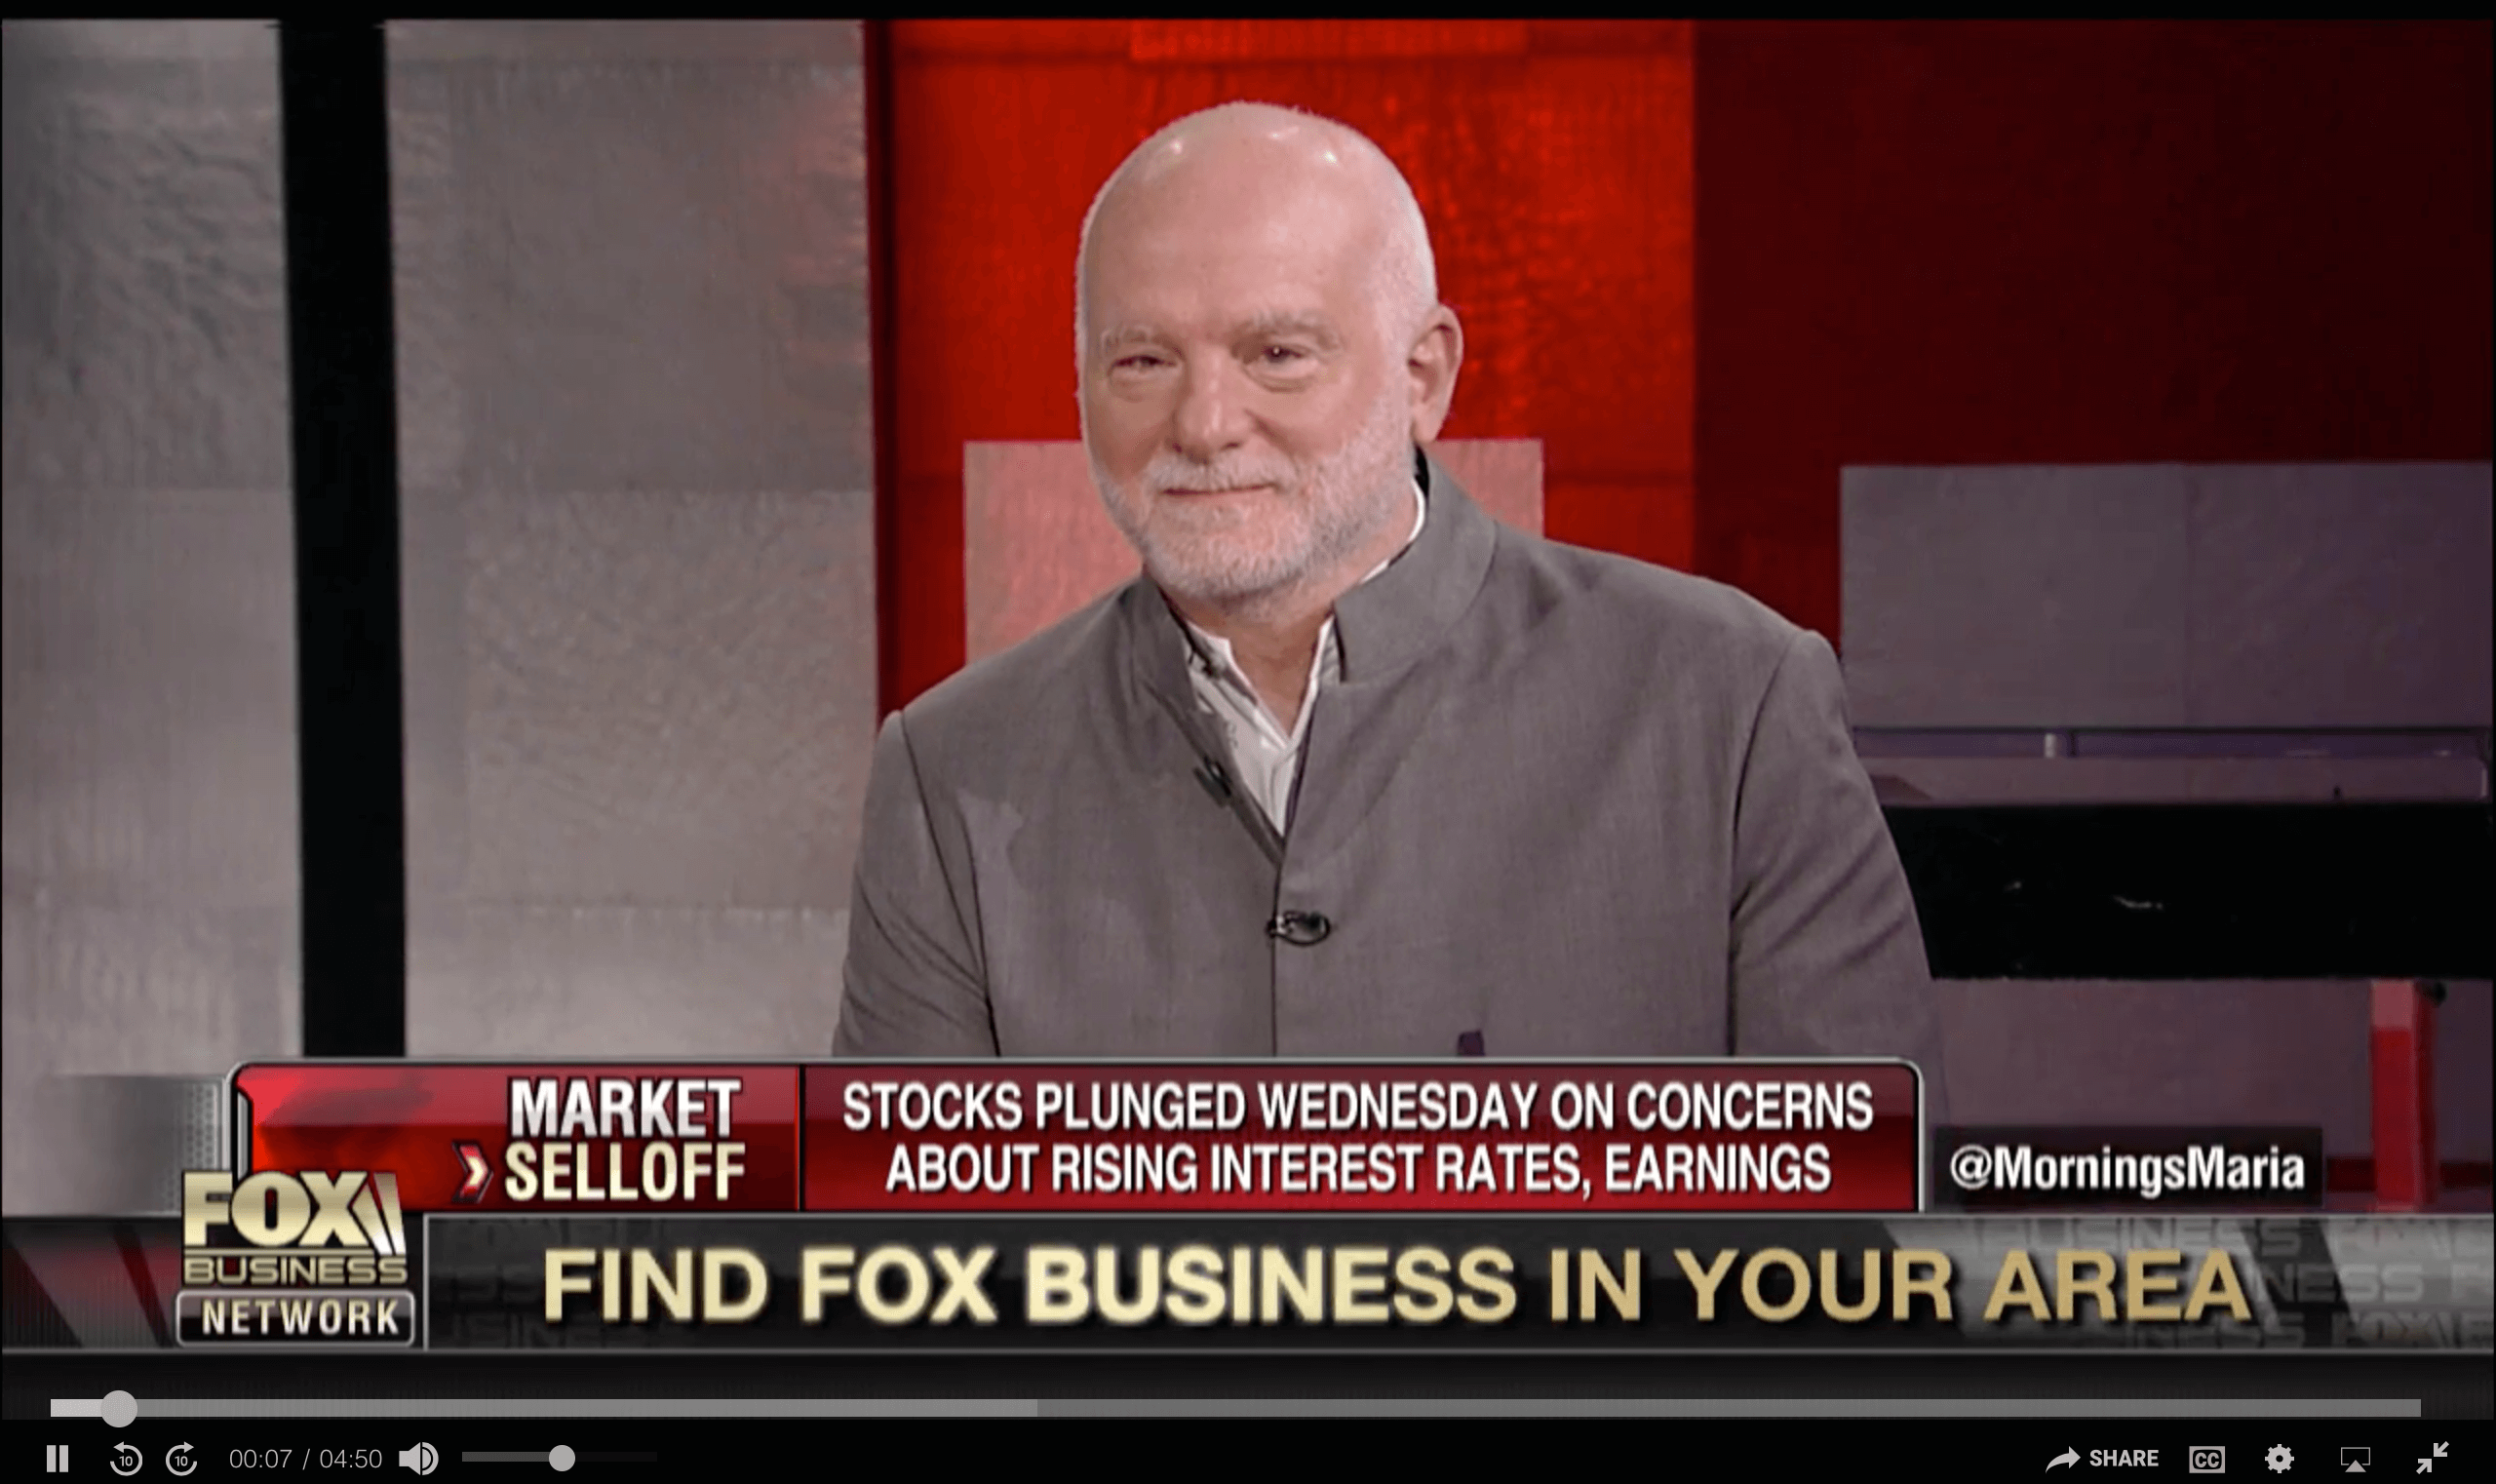 PART ONE: TIGER 21 FOUNDER DISCUSSES THE MARKET SELLOFF ON FOX BUSINESS